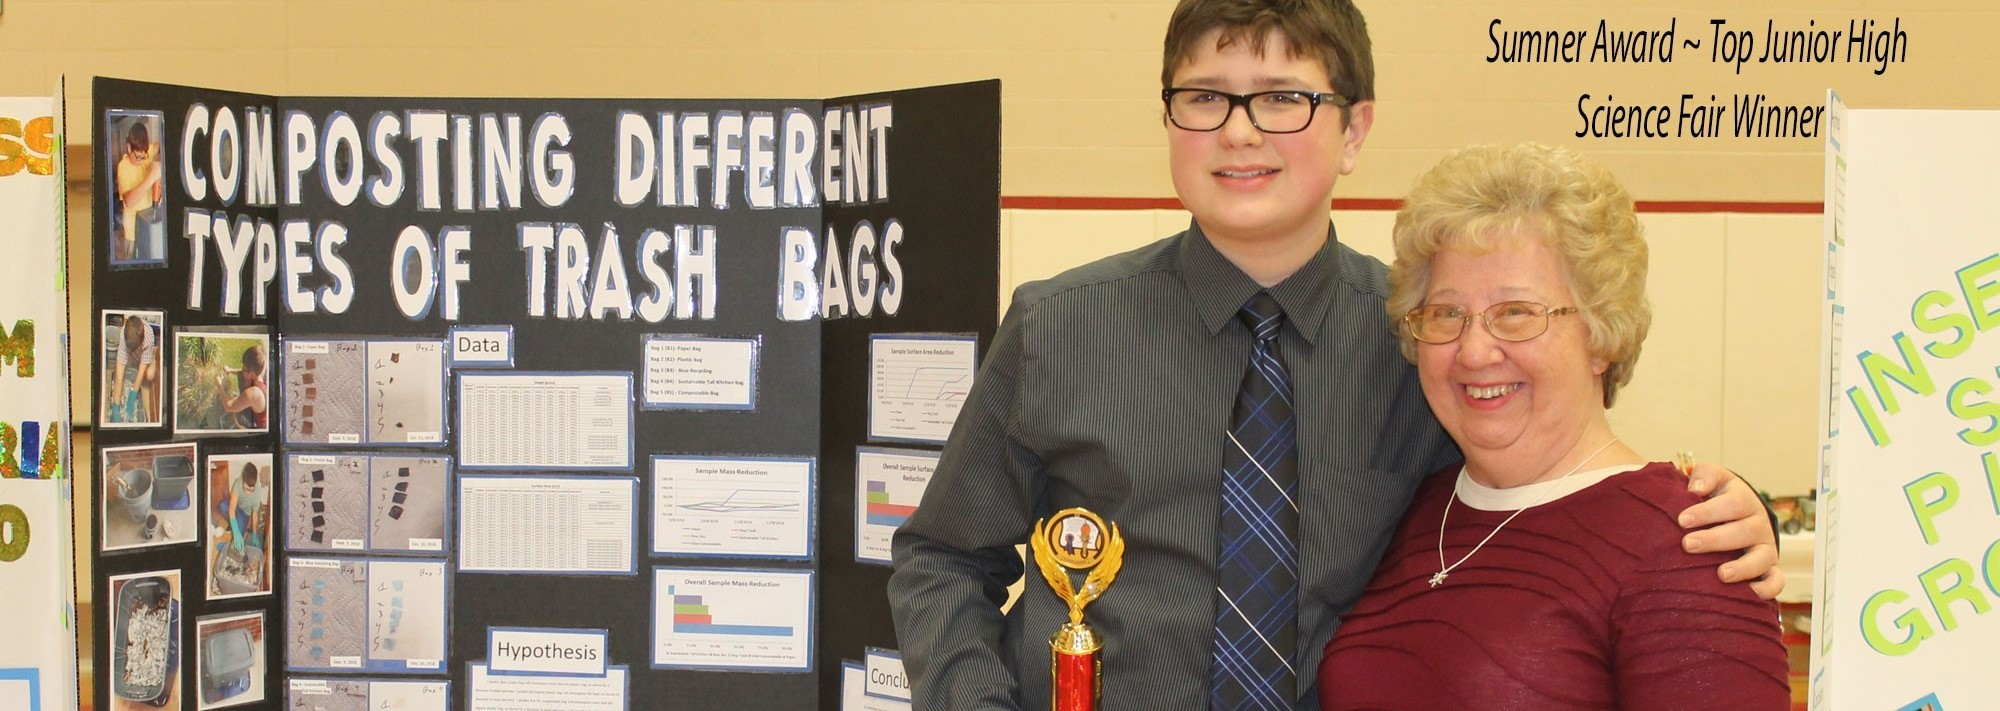 Top Junior High Science Fair Award